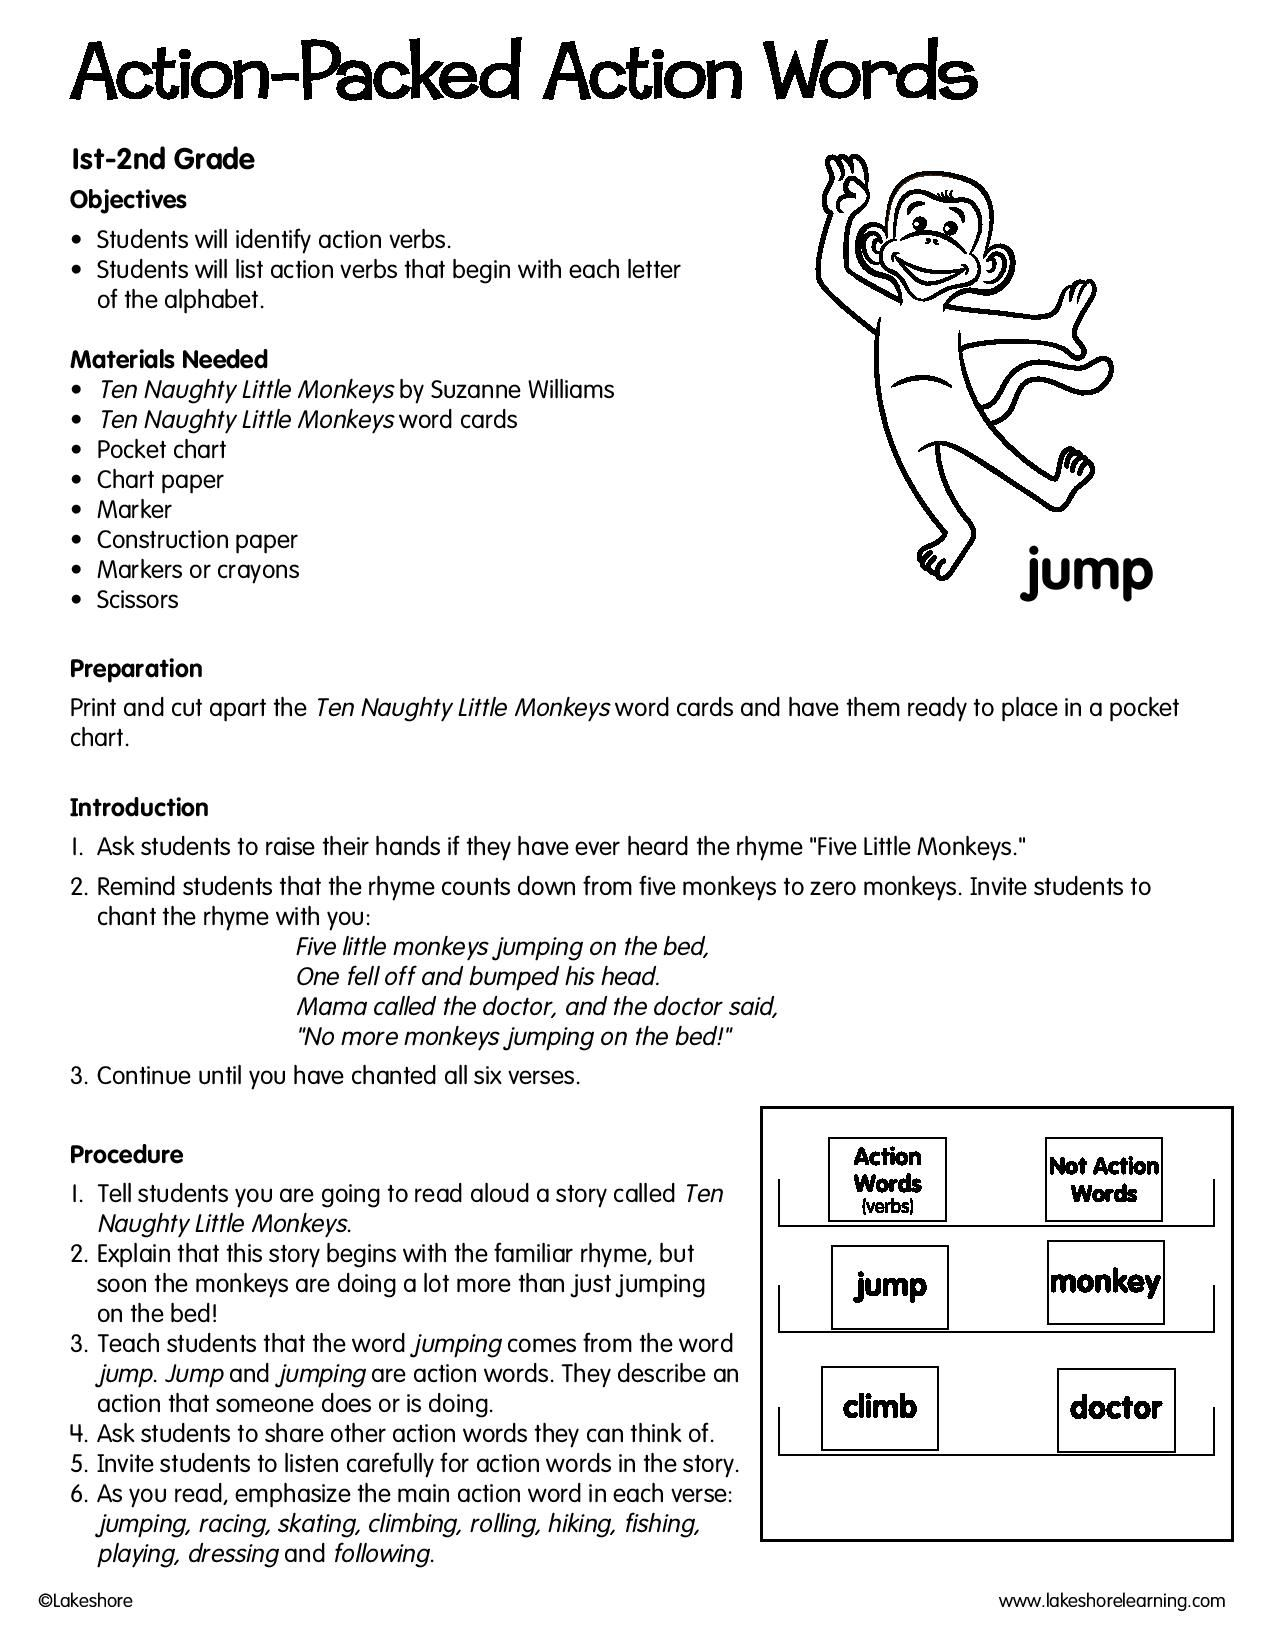 Action Packed Action Words Lessonplan Vocabulary Lesson Plans Action Words Vocabulary Lessons [ 1650 x 1275 Pixel ]